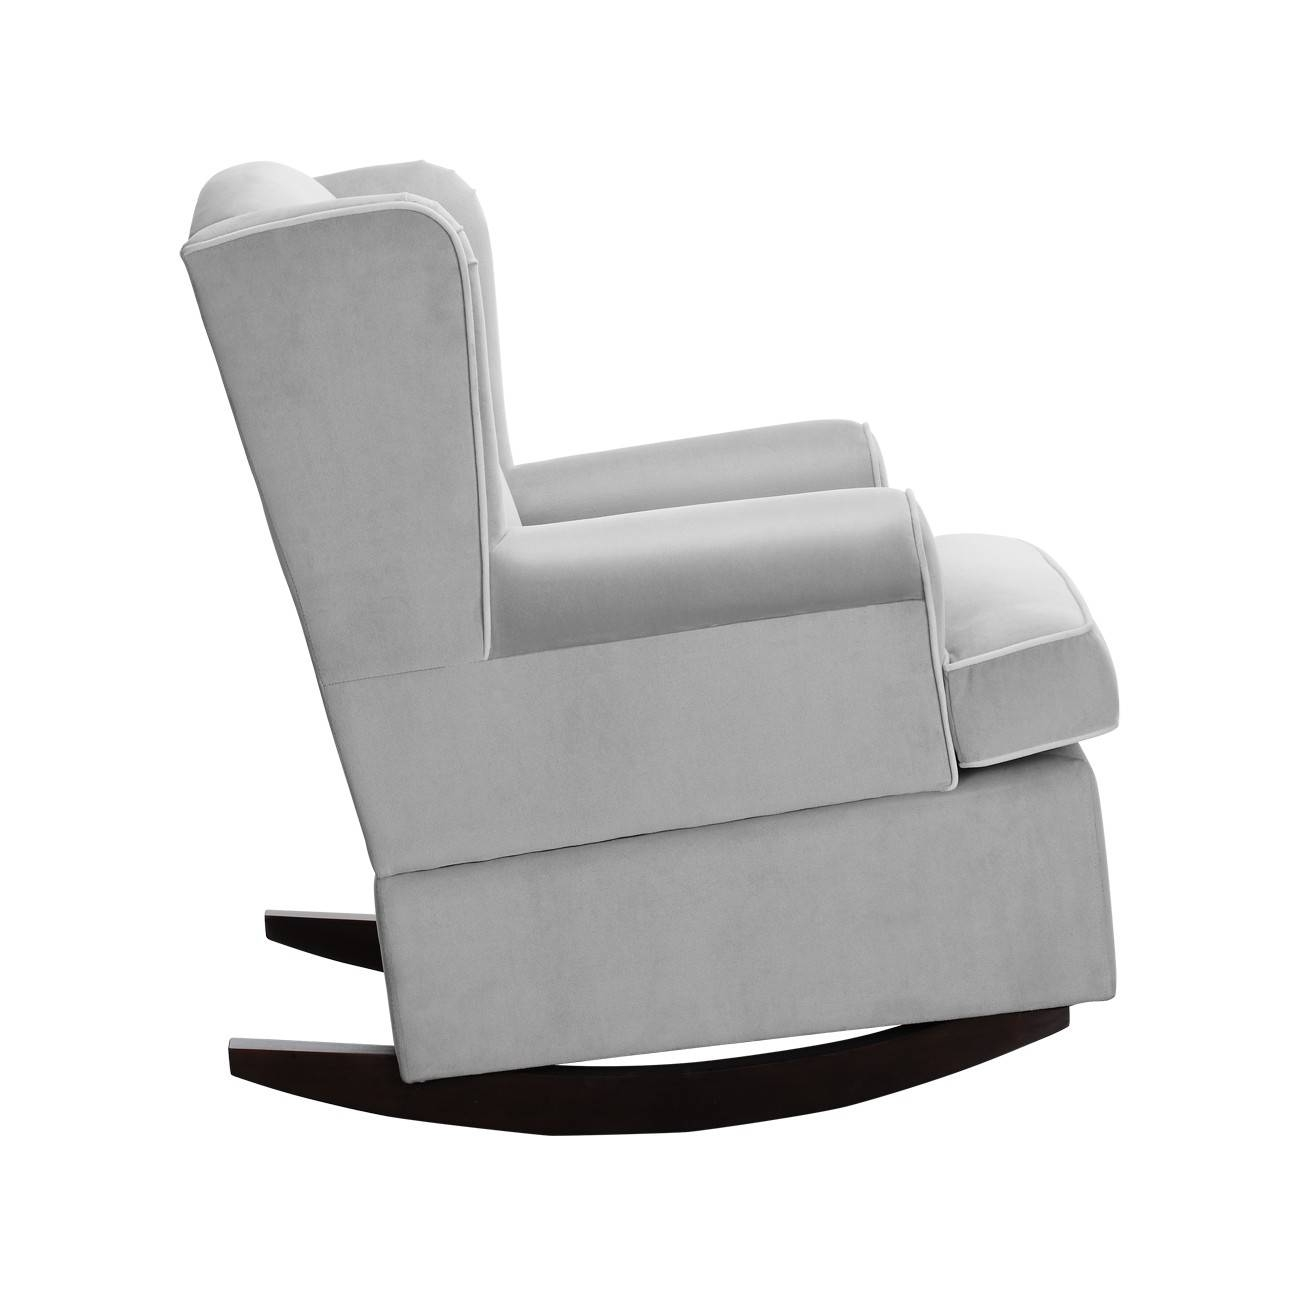 Furniture: Beautiful Upholstered Rocking Chair For Home Furniture with regard to Sofa Rocking Chairs (Image 7 of 30)